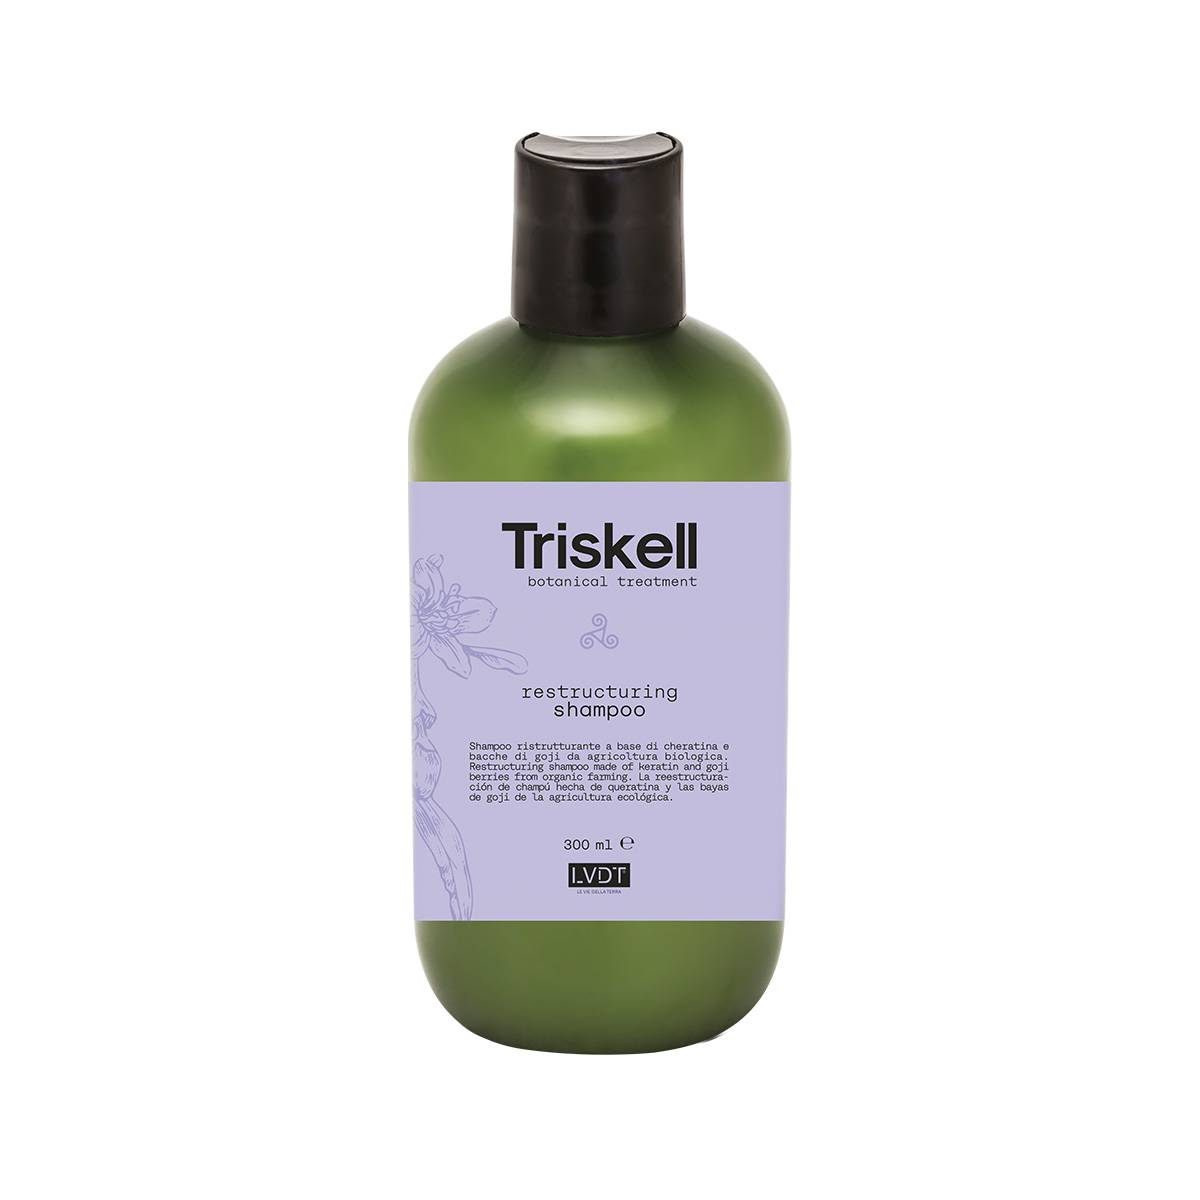 Restructuring shampoo 300 ml triskell nuova botanical treatment RISTRUTTURANTE